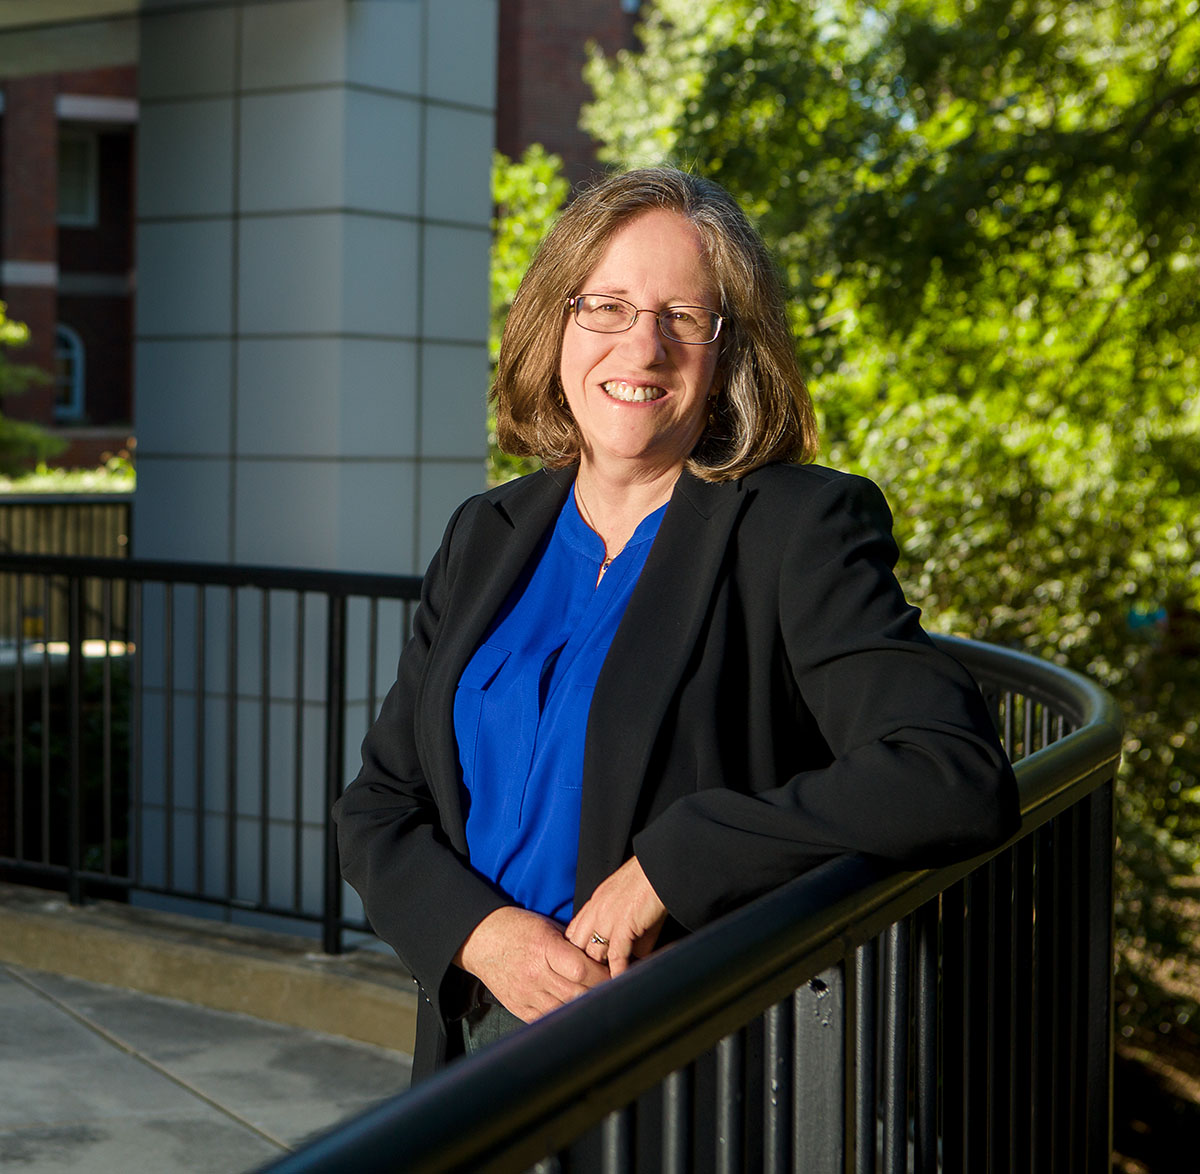 Suzanne Smith, director the UK Unmanned Systems Research Consortium, is using her expertise in systems engineering in another, potentially life-saving capacity.